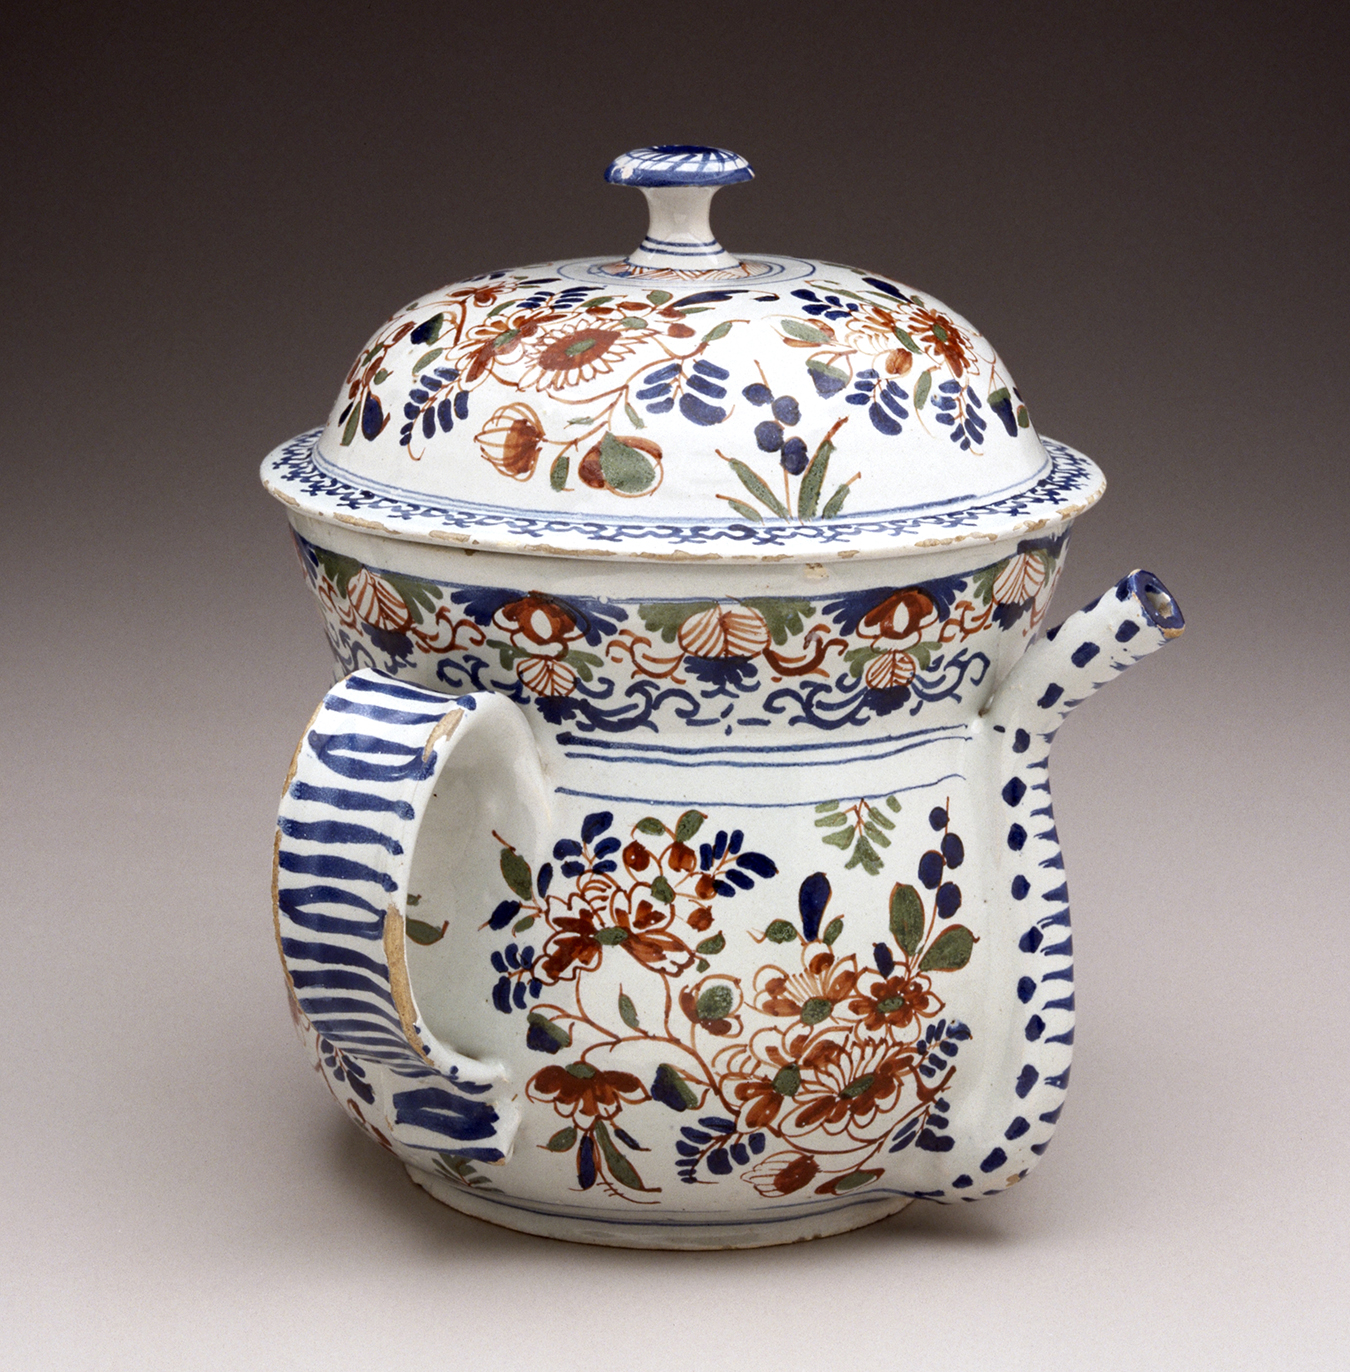 A small white lidded pot with a spout and handle. The white surface is painted with red, green, and blue decorations.